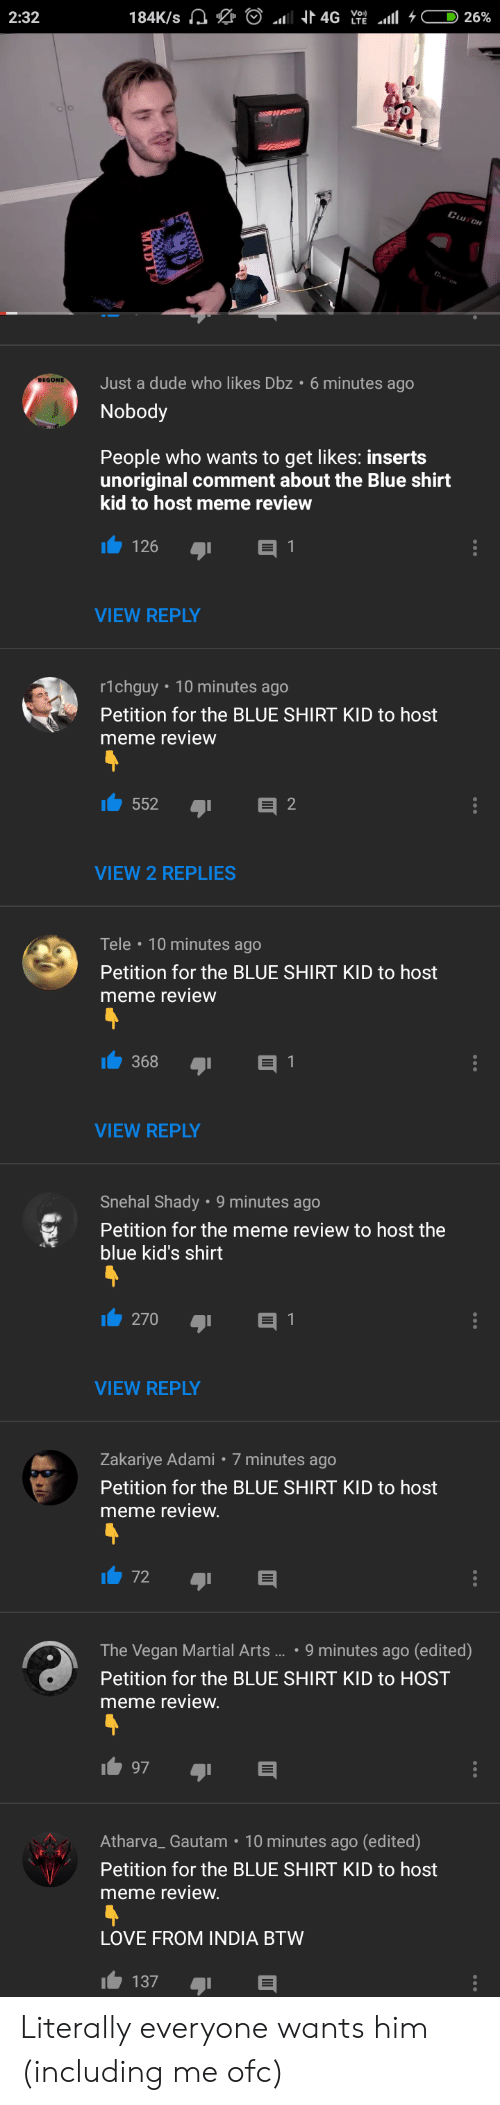 Dude, Love, and Meme: 2:32  Just a dude who likes Dbz  Nobody  6 minutes ago  People who wants to get likes: inserts  unoriginal comment about the Blue shirt  kid to host meme review  VIEW REPLY  r1chguy 10 minutes ago  Petition for the BLUE SHIRT KID to host  meme review  552 I  2  VIEW 2 REPLIES  Tele 10 minutes ago  Petition for the BLUE SHIRT KID to host  meme review  368  VIEW REPLY  Snehal Shady 9 minutes ago  ePetition for the meme review to host the  blue kid's shirt  1 270  1  VIEW REPLY  Zakariye Adami 7 minutes ago  Petition for the BLUE SHIRT KID to host  meme review  The Vegan Martial Arts....9 minutes ago (edited)  Petition for the BLUE SHIRT KID to HOST  meme review  97  Atharva_ Gautam 10 minutes ago (edited)  Petition for the BLUE SHIRT KID to host  meme review  LOVE FROM INDIA BTVW  1 137 Literally everyone wants him (including me ofc)